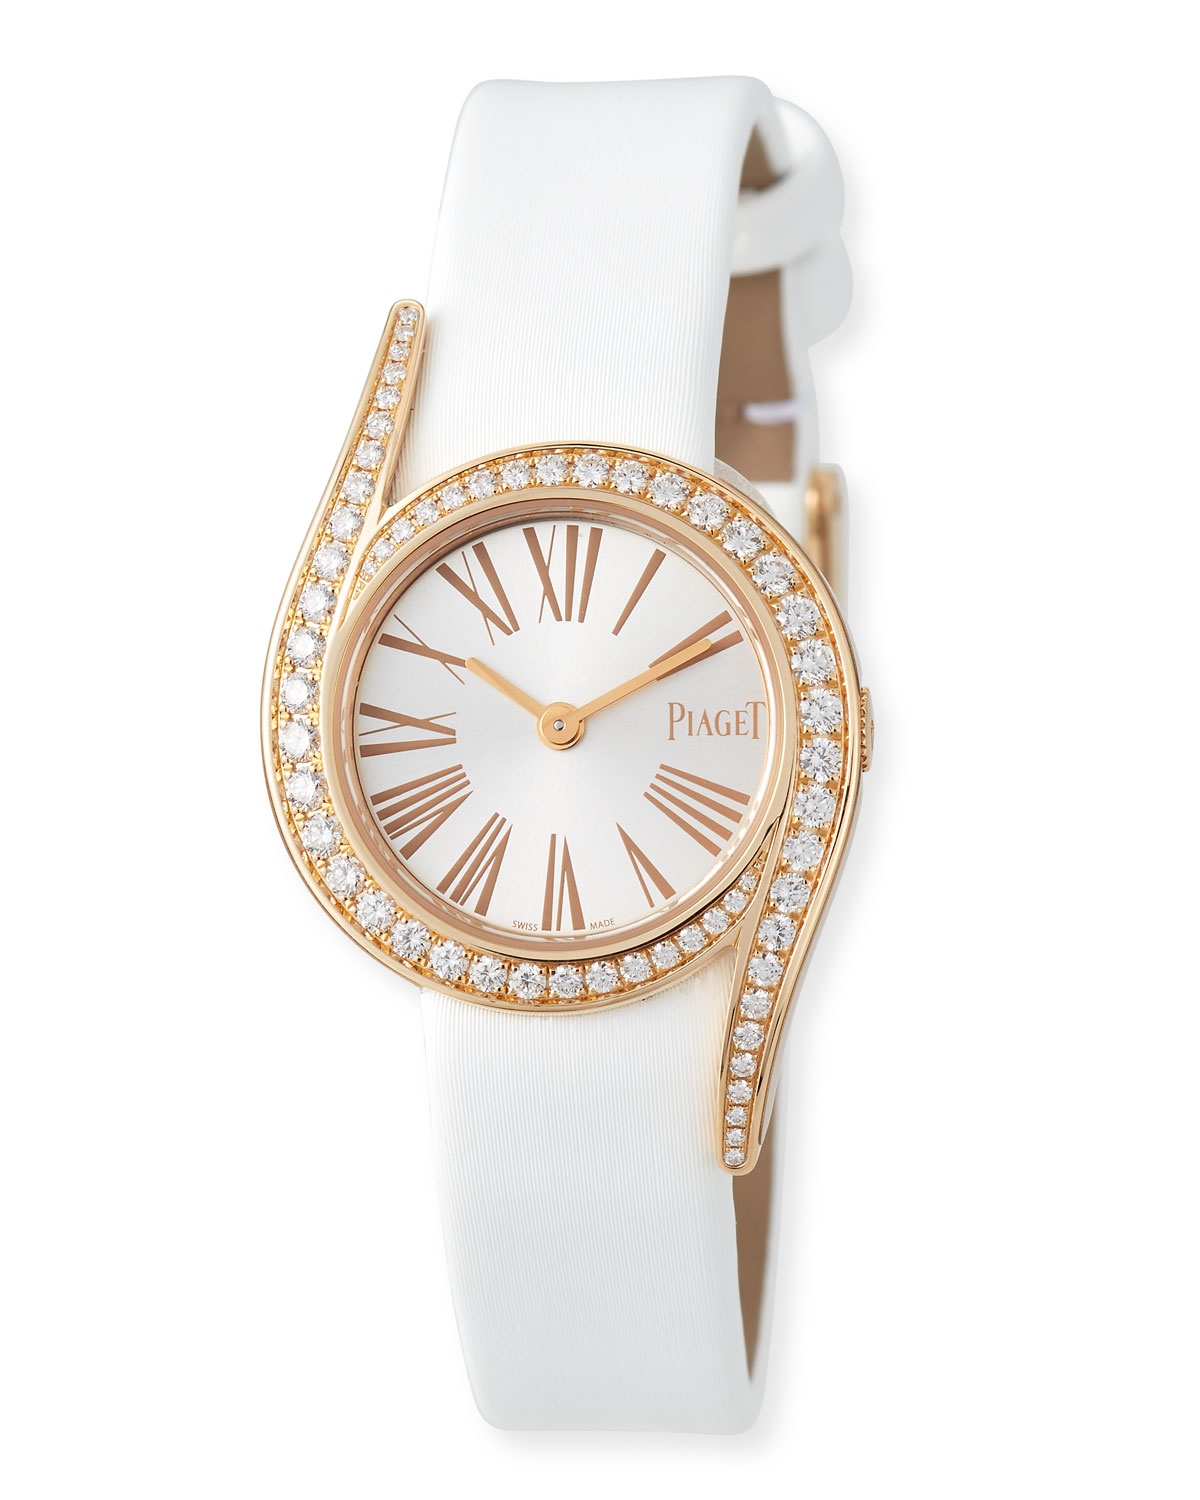 839945d5642 PIAGET Limelight Gala 18k Rose Gold Watch